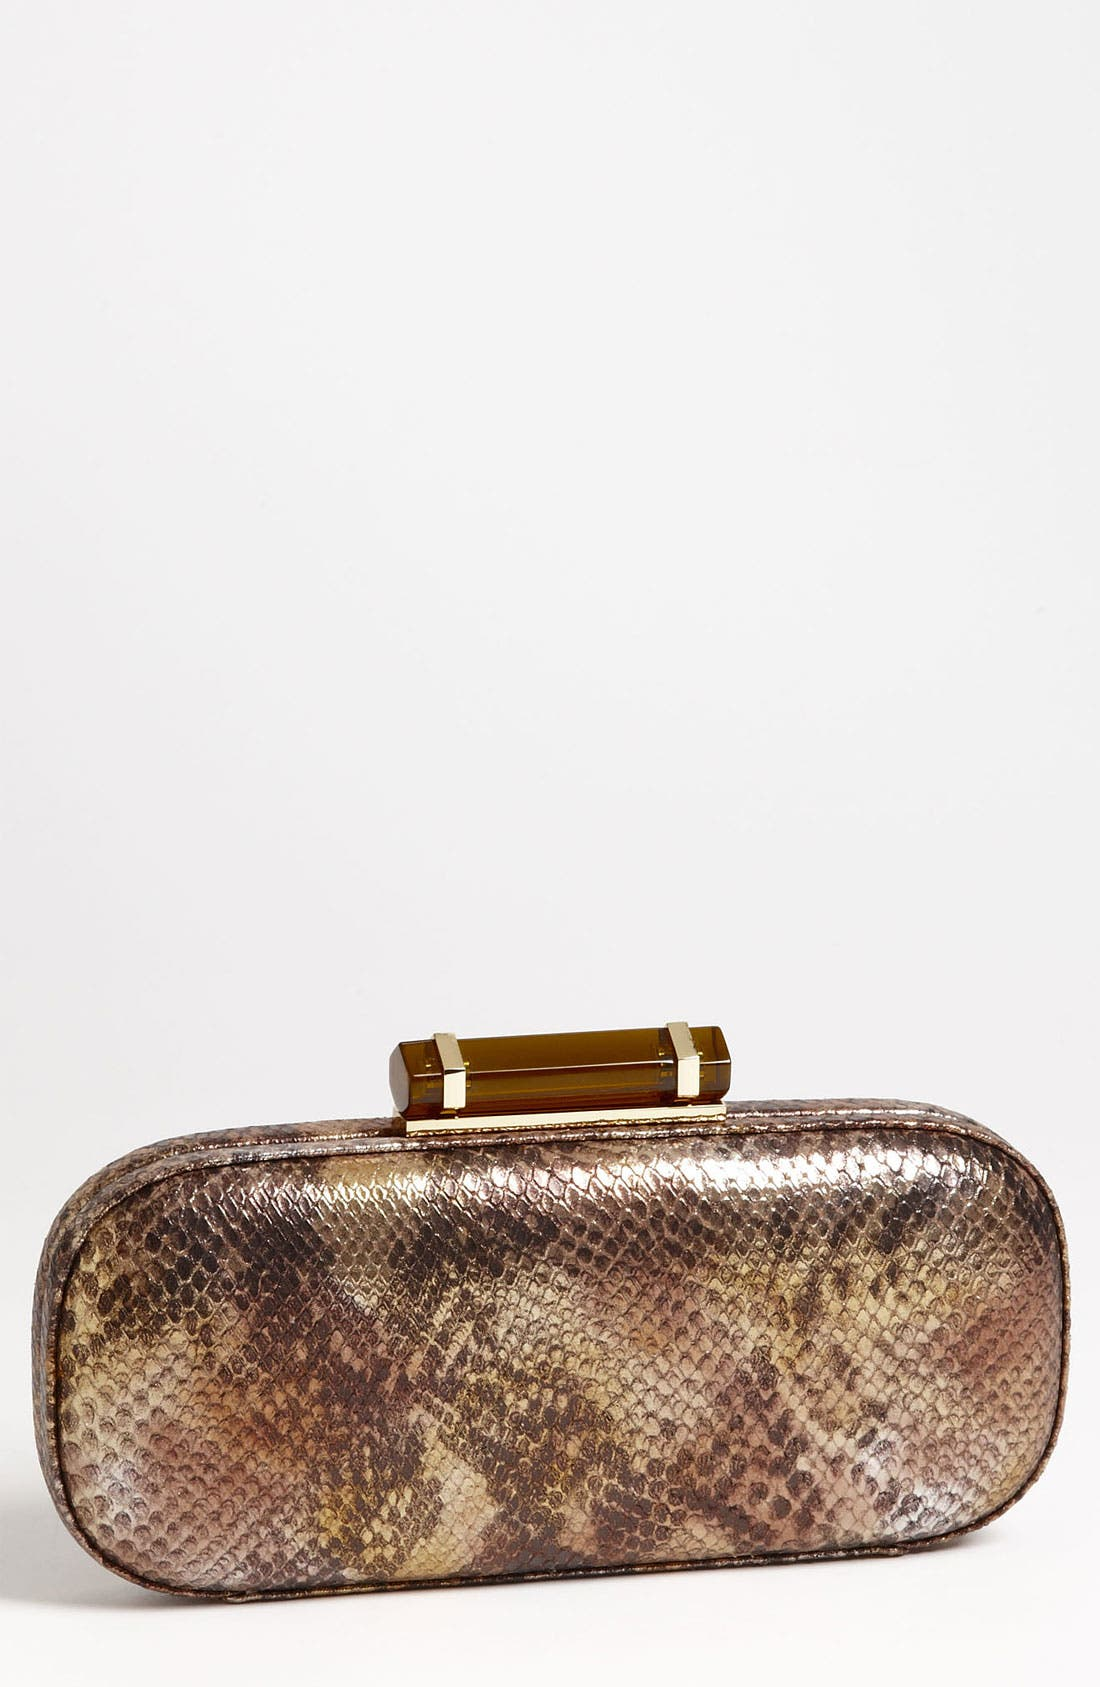 Main Image - Vince Camuto 'Onyx' Clutch